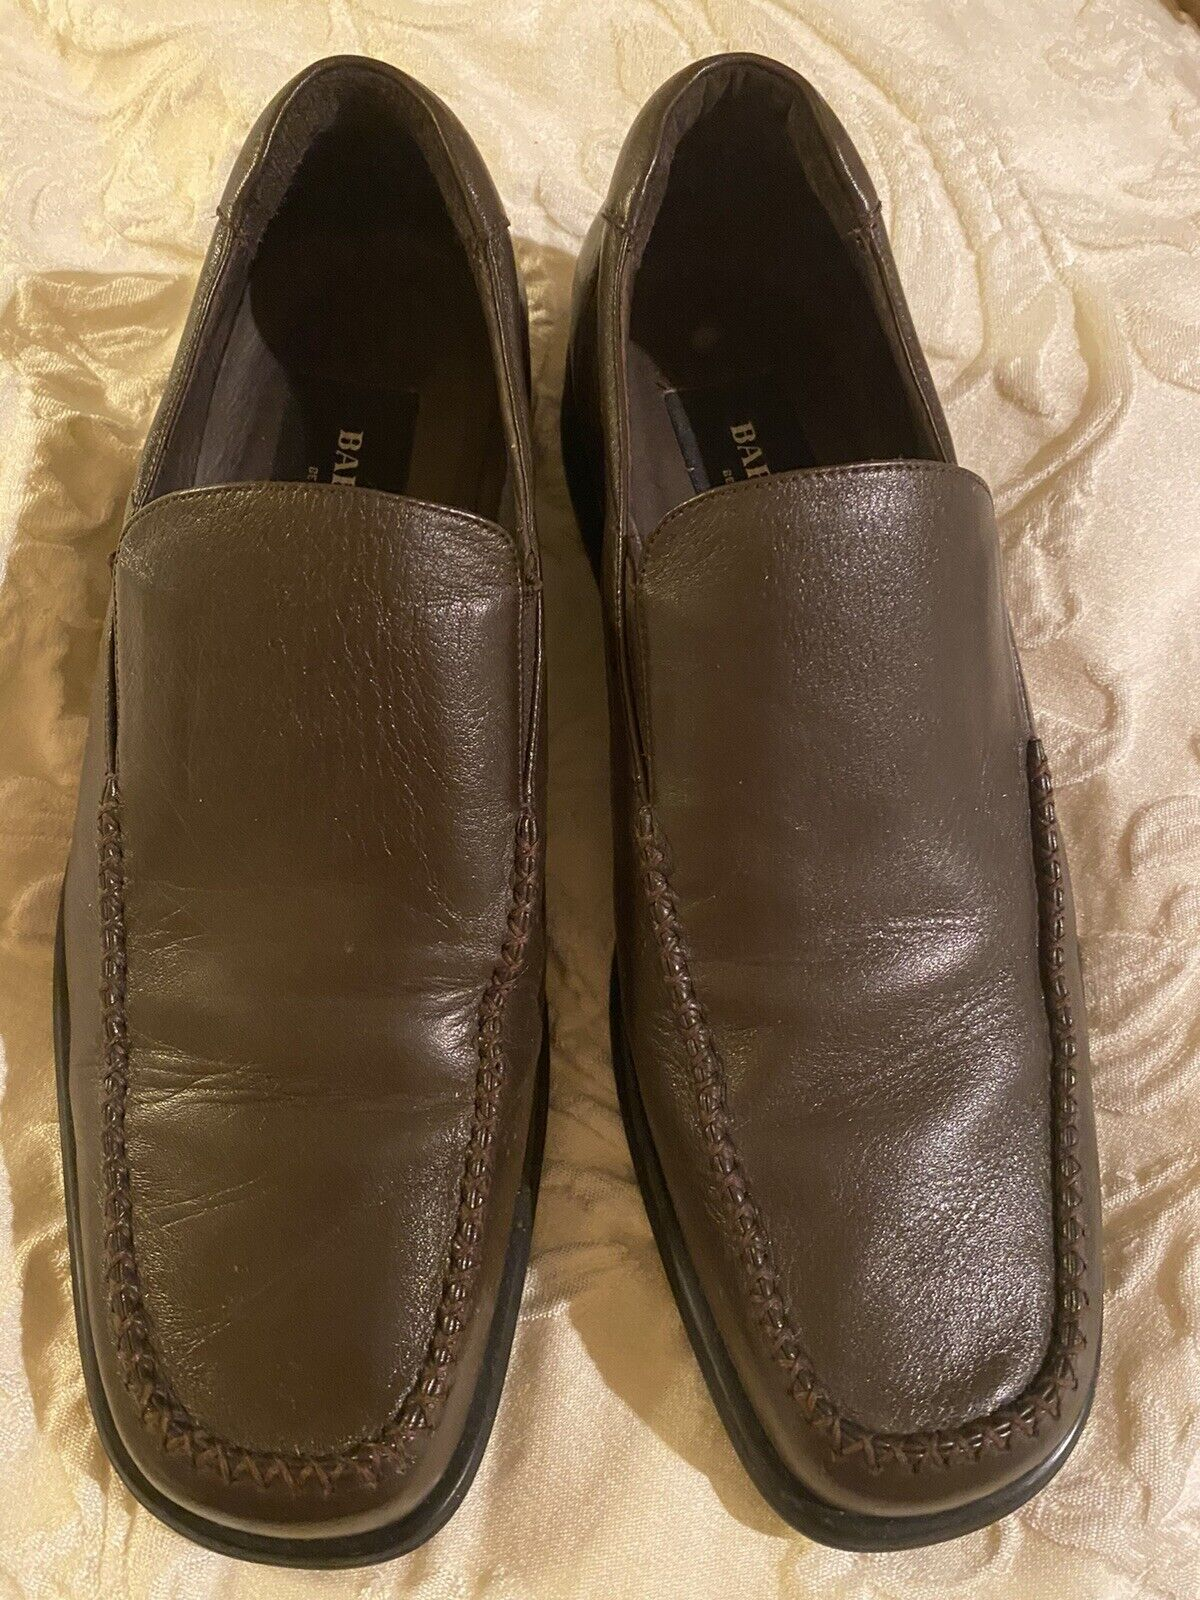 Bardelli Beverly Hills HANDMADE Mens Leather Slip-on Shoes Size 40 7 Brown